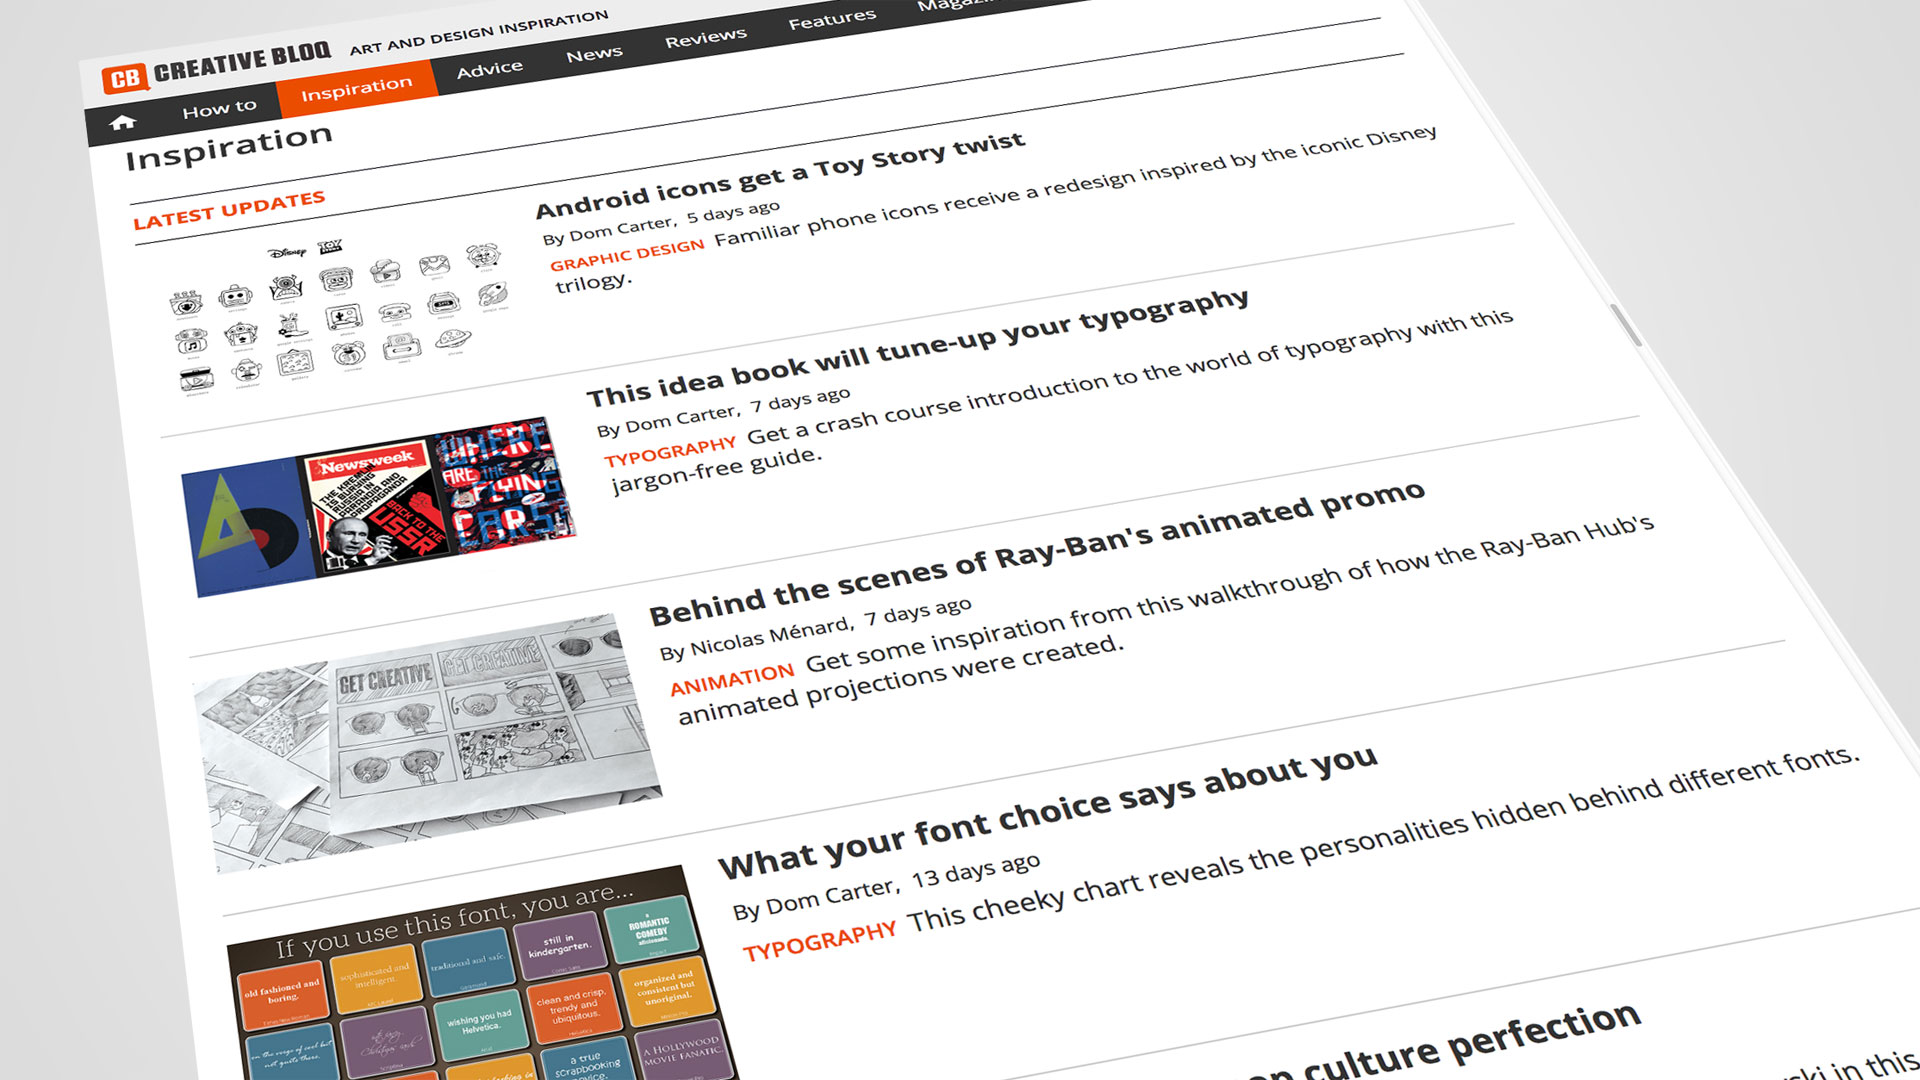 7 ways to get featured by the design press